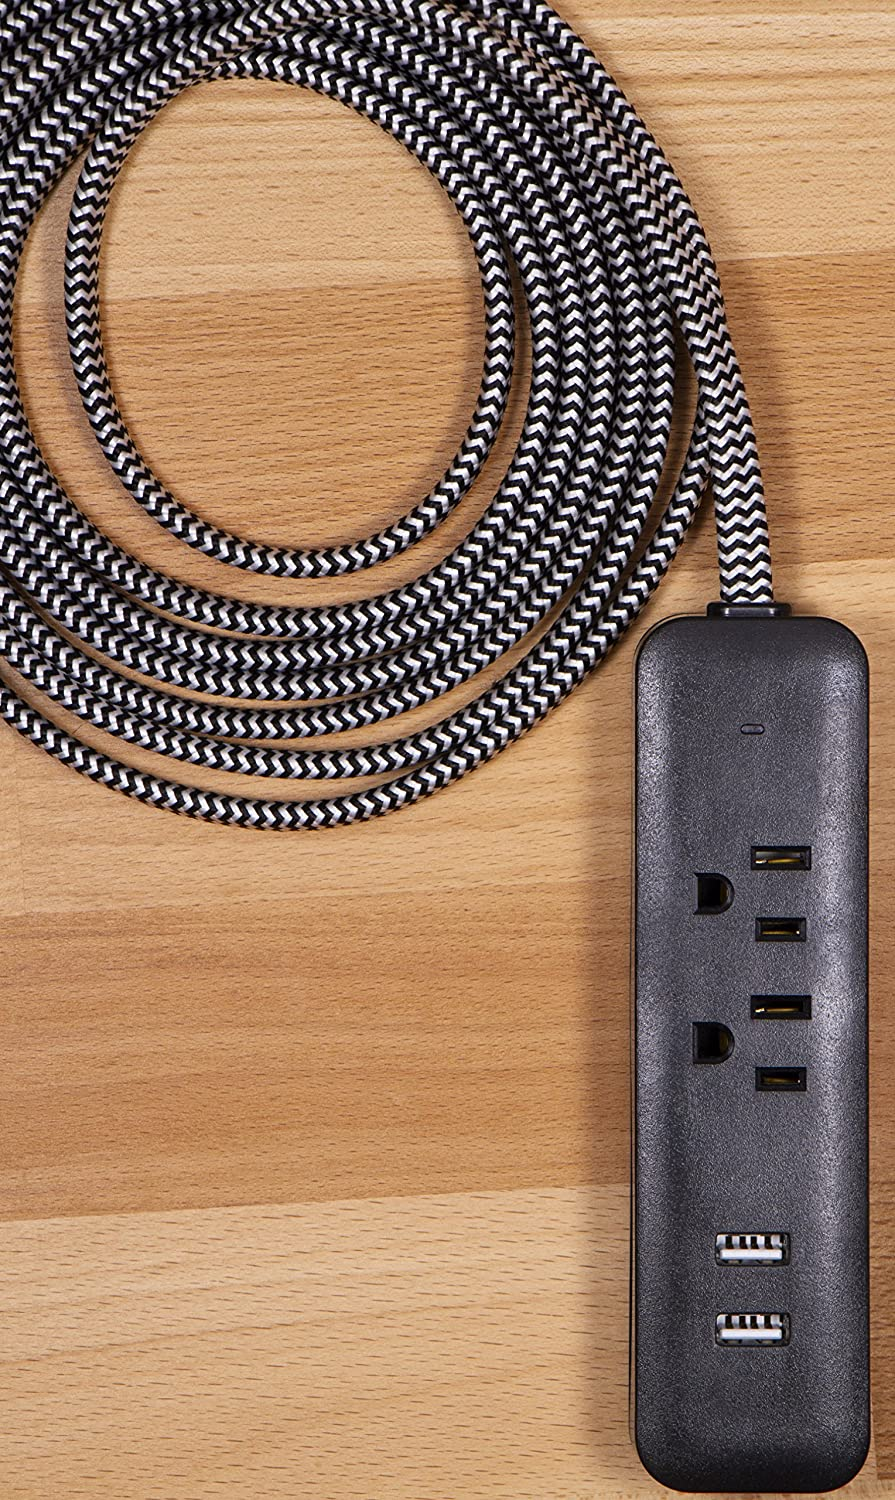 Cordinate Designer 3 Outlet Extension Cord With Surge Protection And Plug Safety For Electric Kilns Mint Braided Dcor Fabric